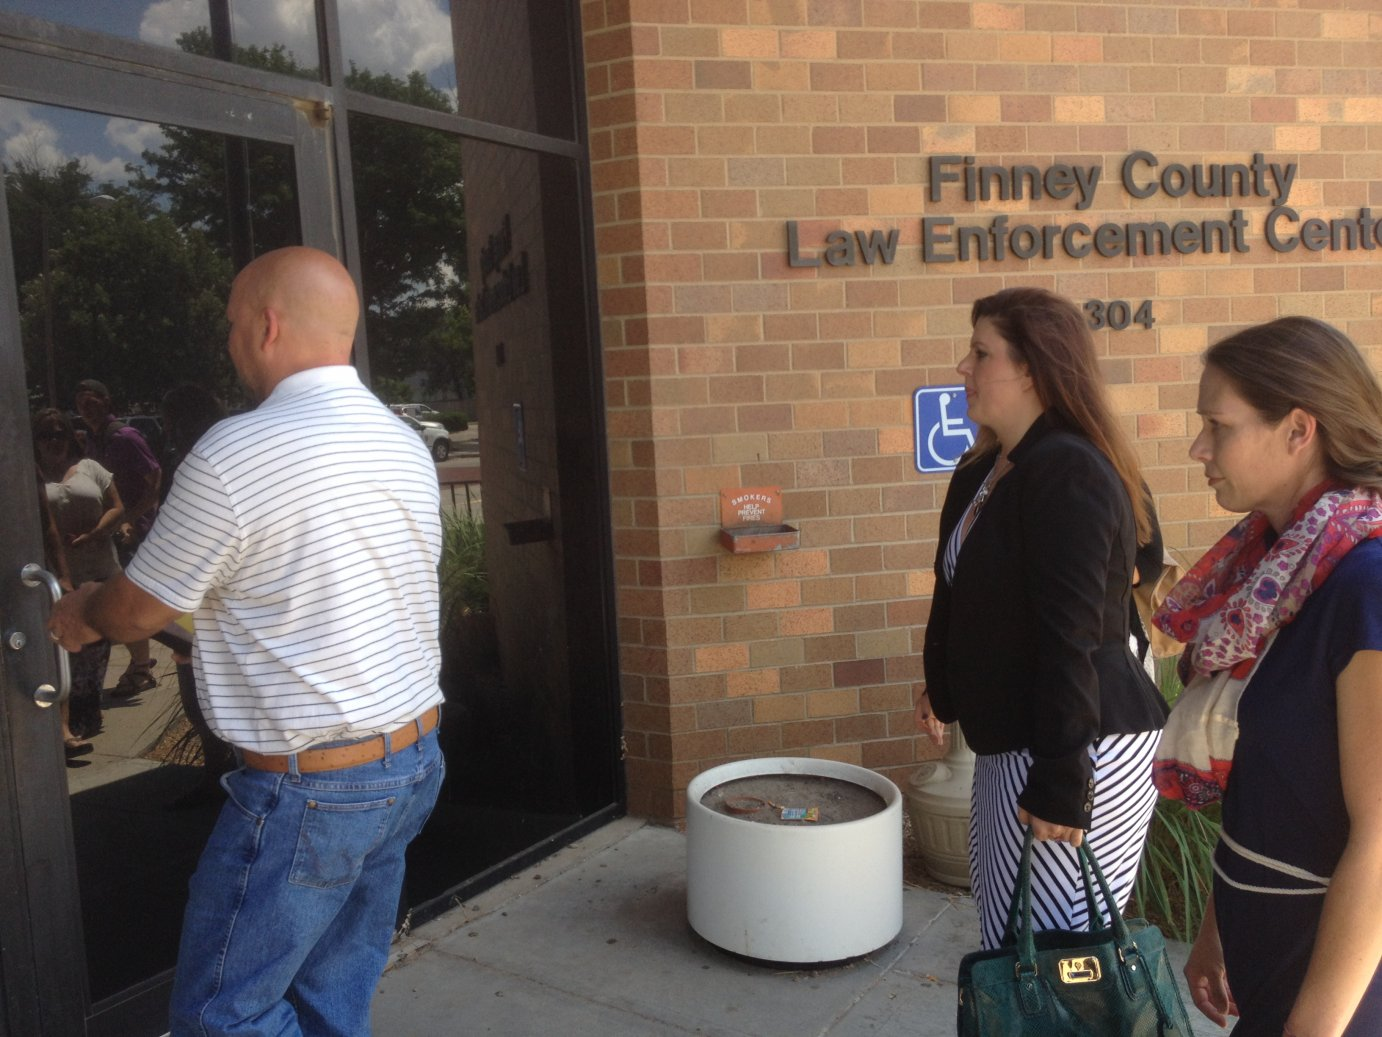 Shona Banda (right) enters the Finney County Law Enforcement Center with her attorney, Sarah Swain (center). Photo by Bryan Thompson